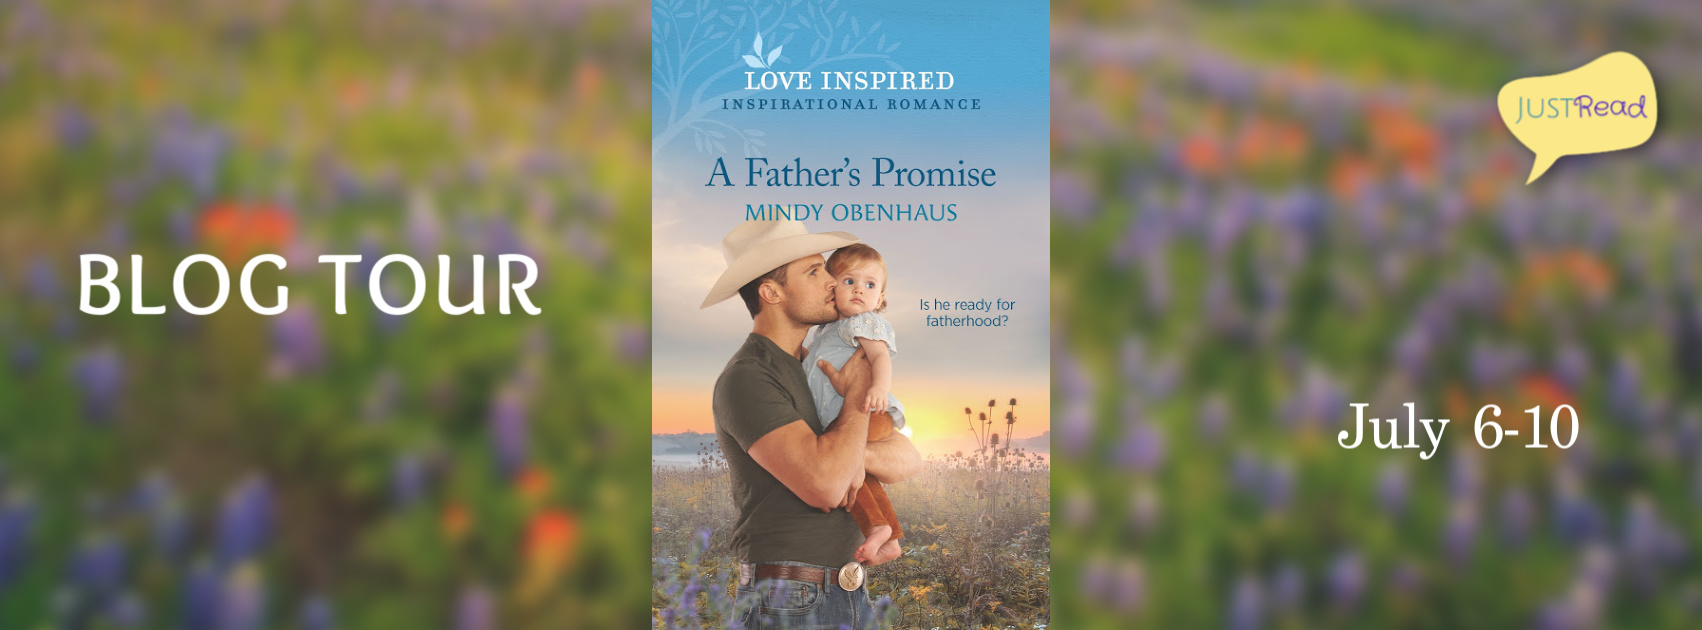 Welcome to the A Father's Promise Blog Tour & Giveaway!